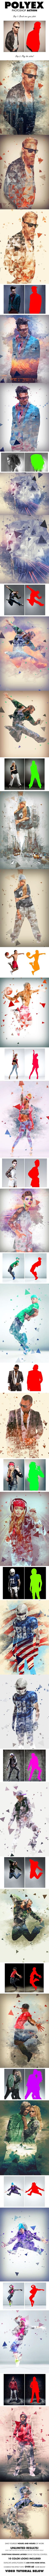 PolyEx Photoshop Action - Photo Effects Actions